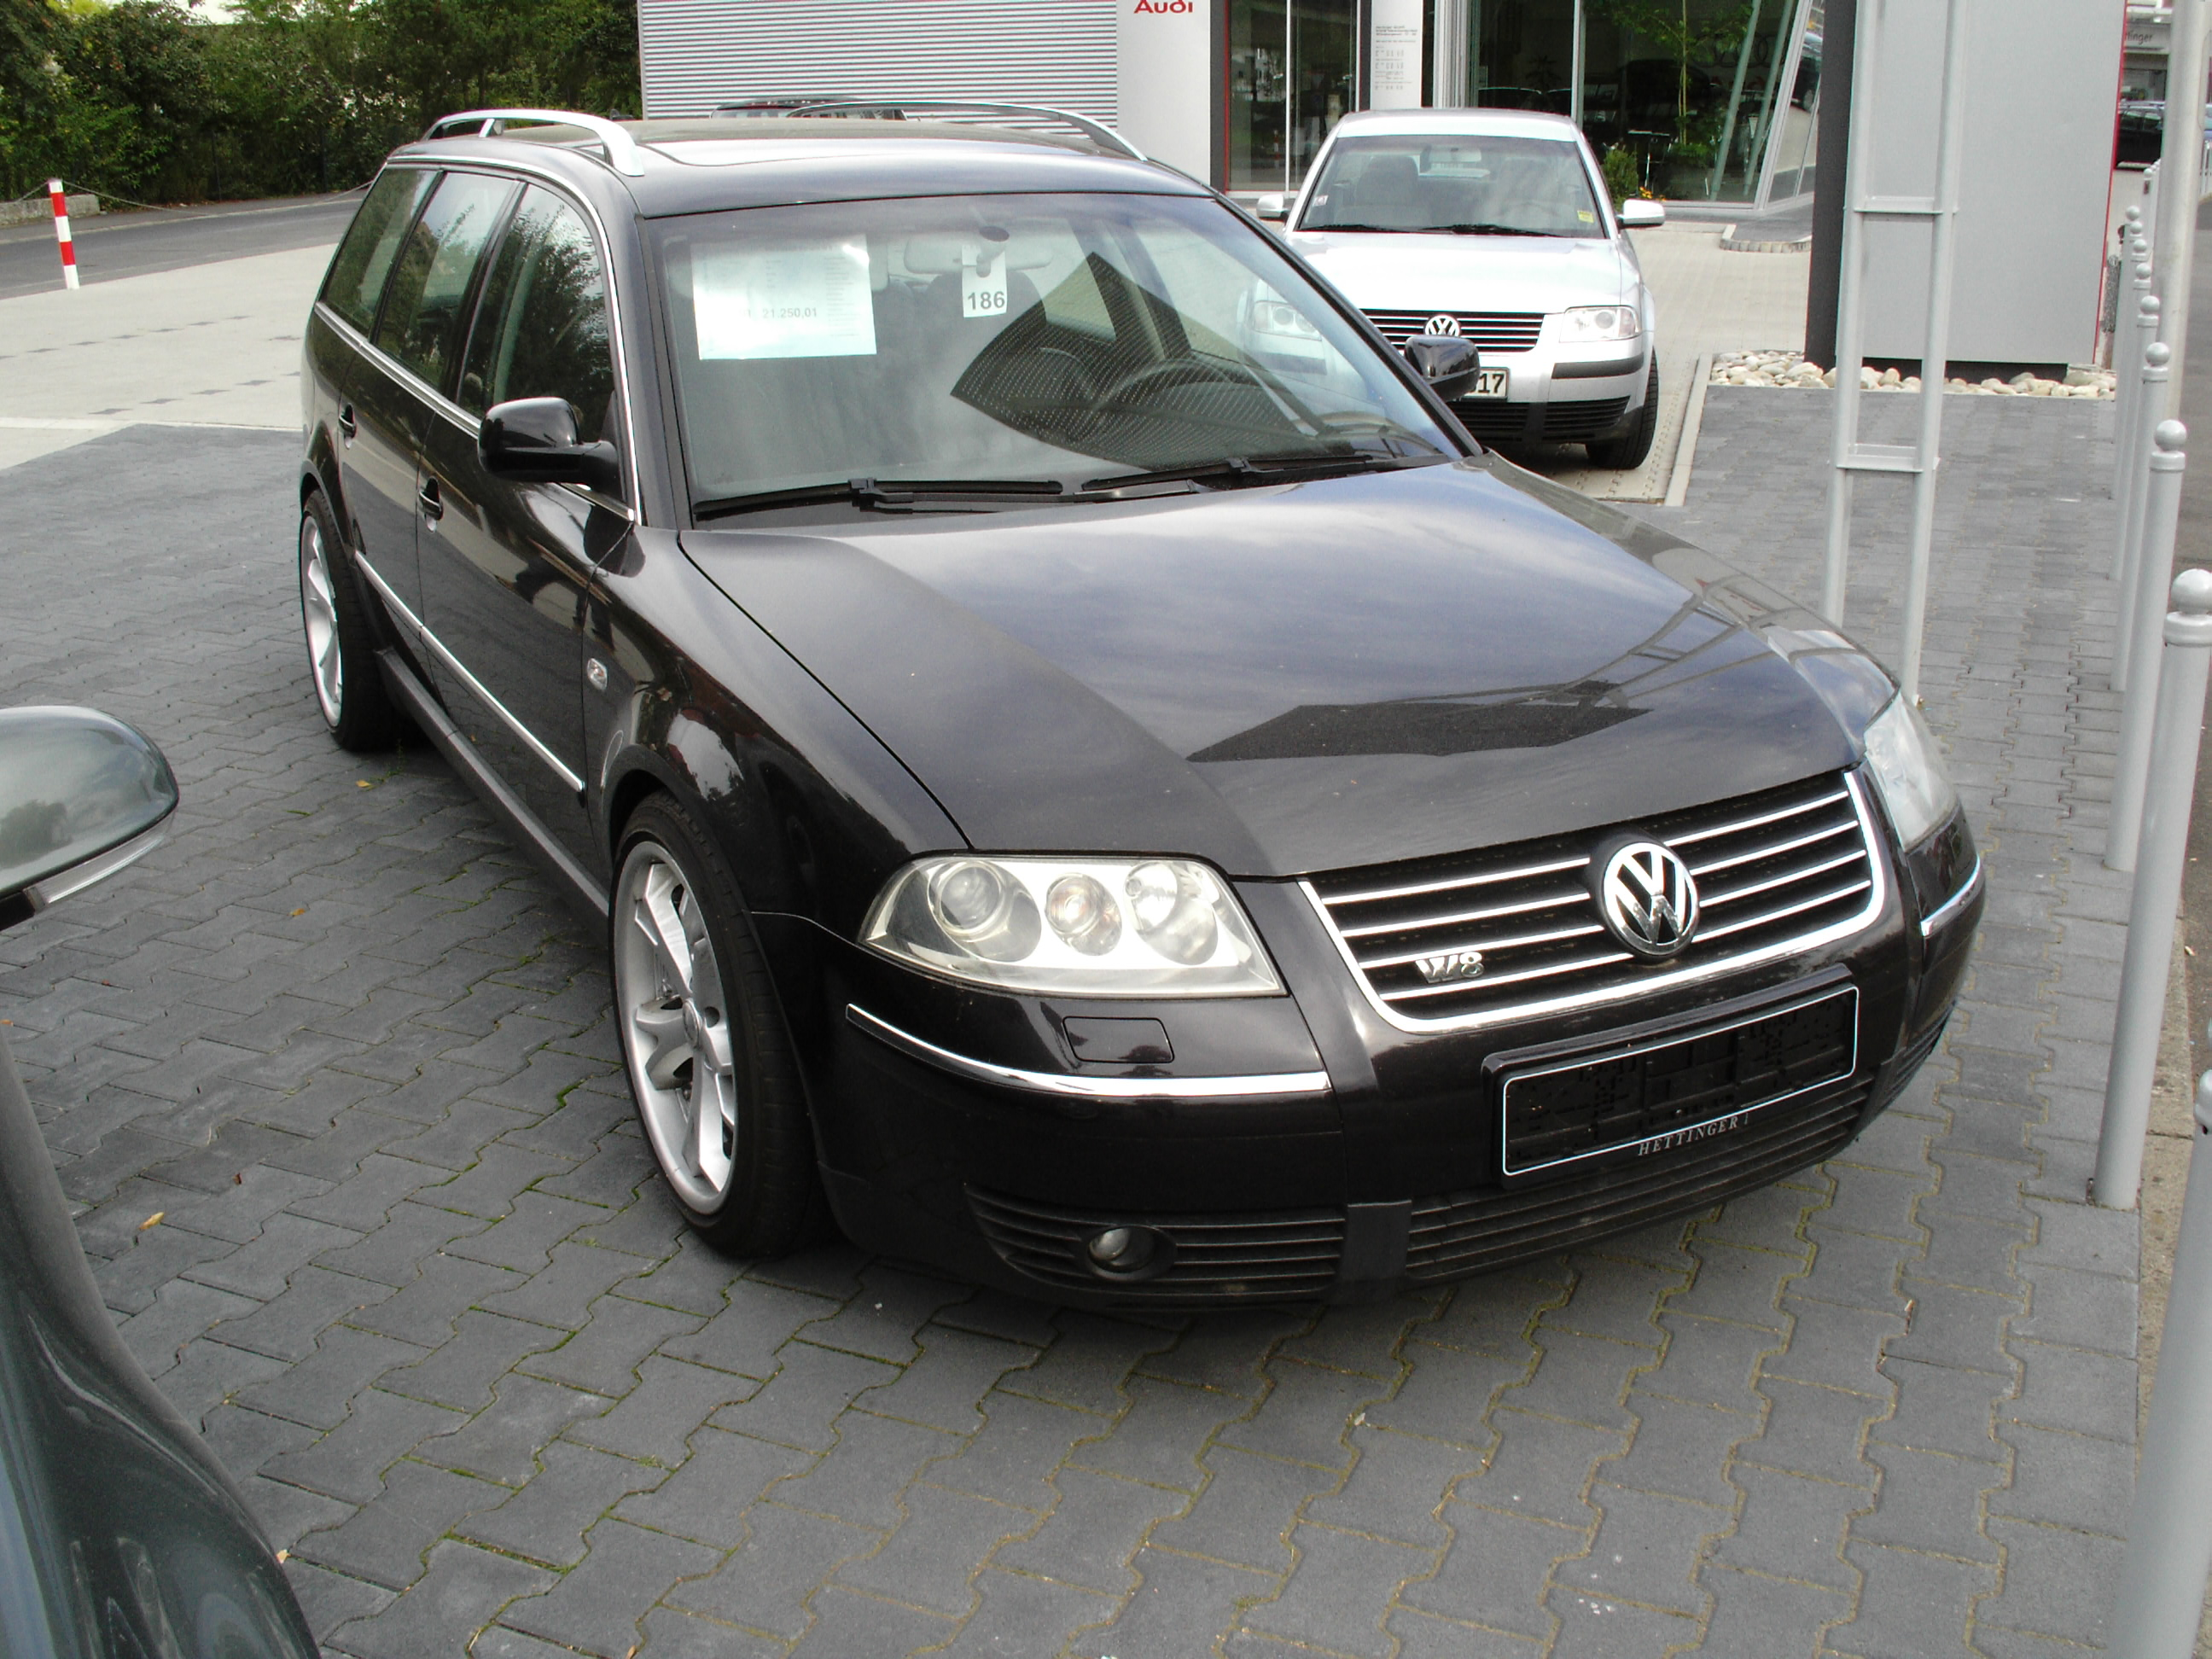 file volkswagen passat w8 front jpg wikimedia commons. Black Bedroom Furniture Sets. Home Design Ideas